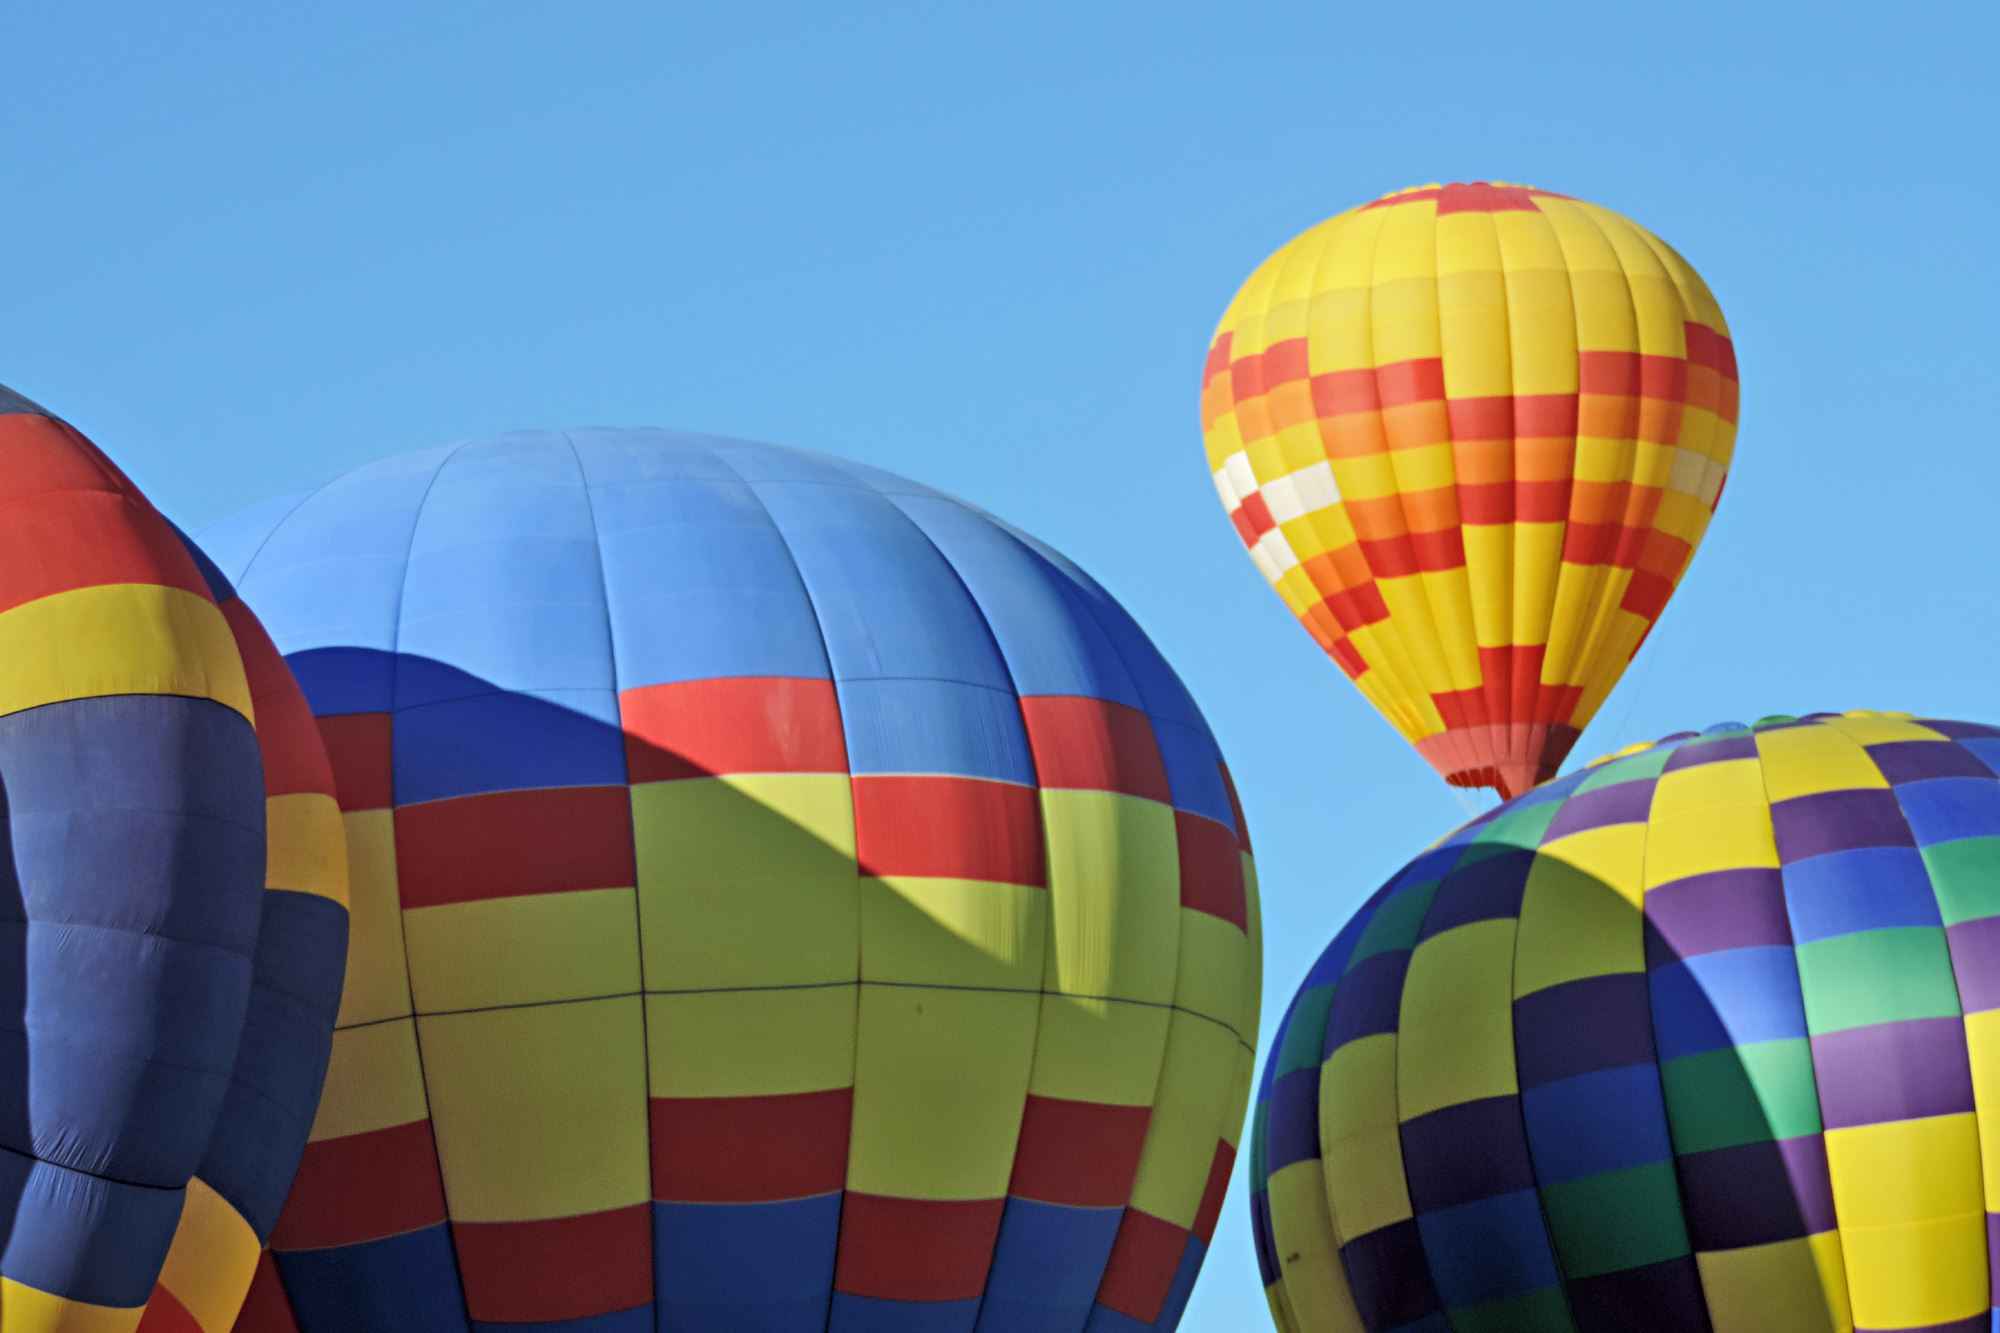 Four Colorful Hot Air Balloons